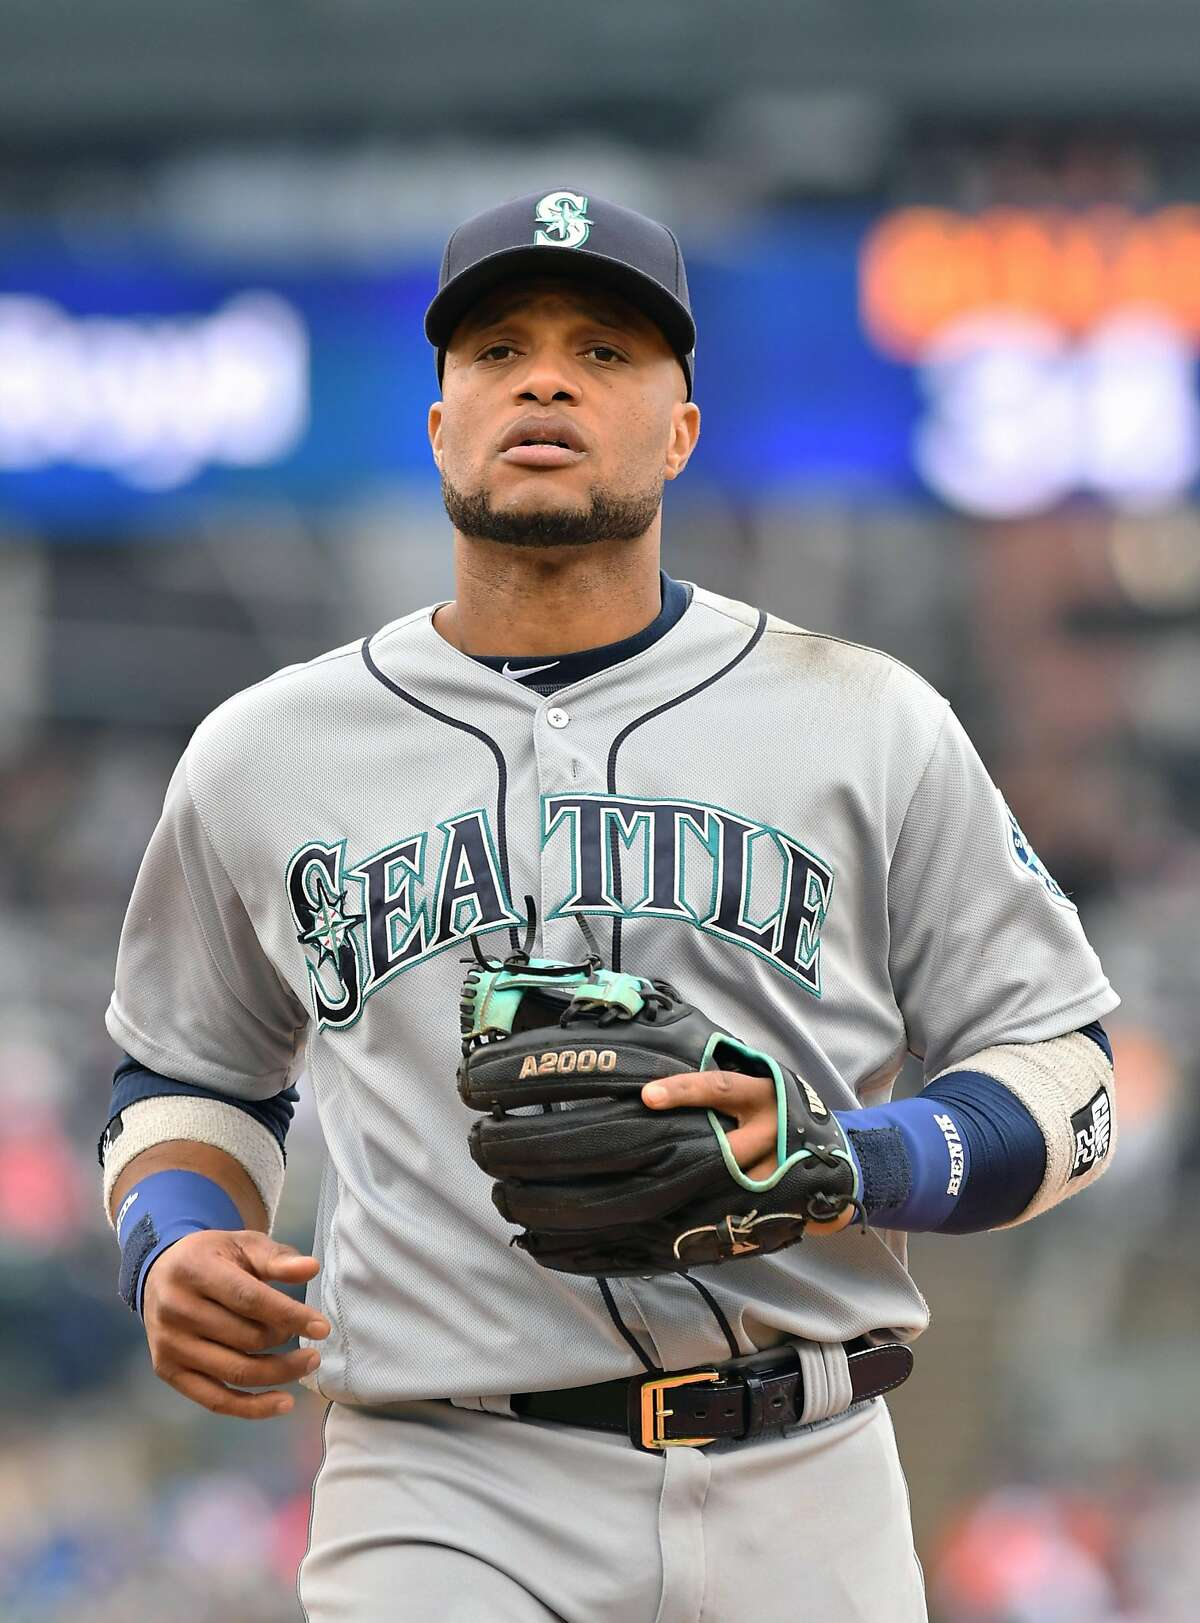 The Mets will pick up the remaining five years and $120 million left on Robinson Cano's contract.